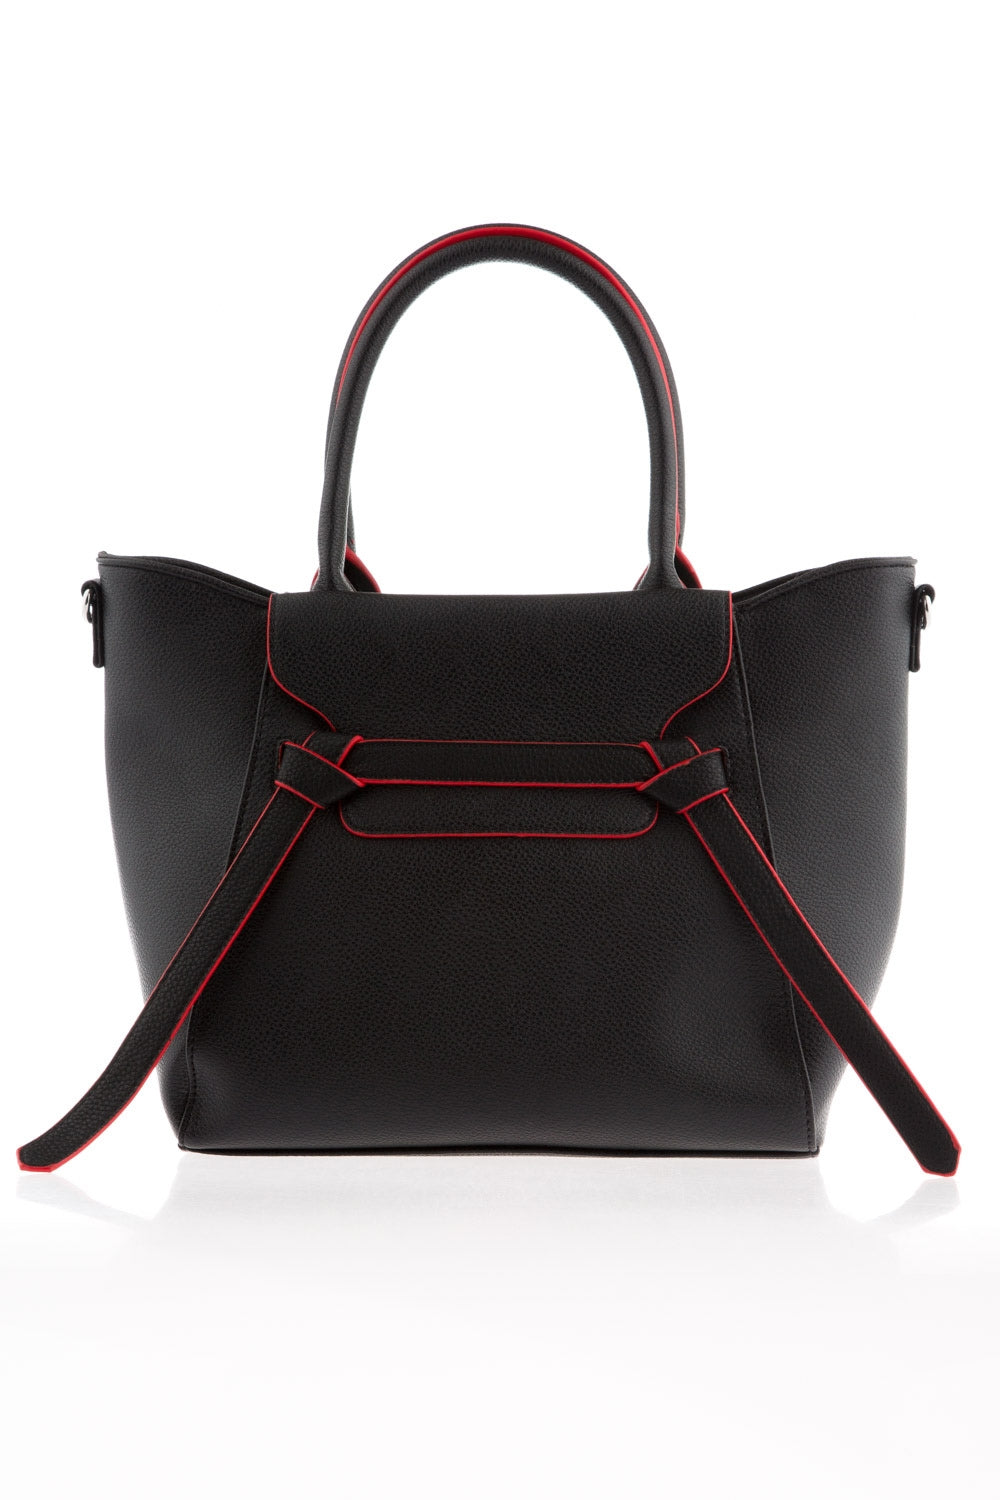 Type 4 Tailored Favorite Handbag